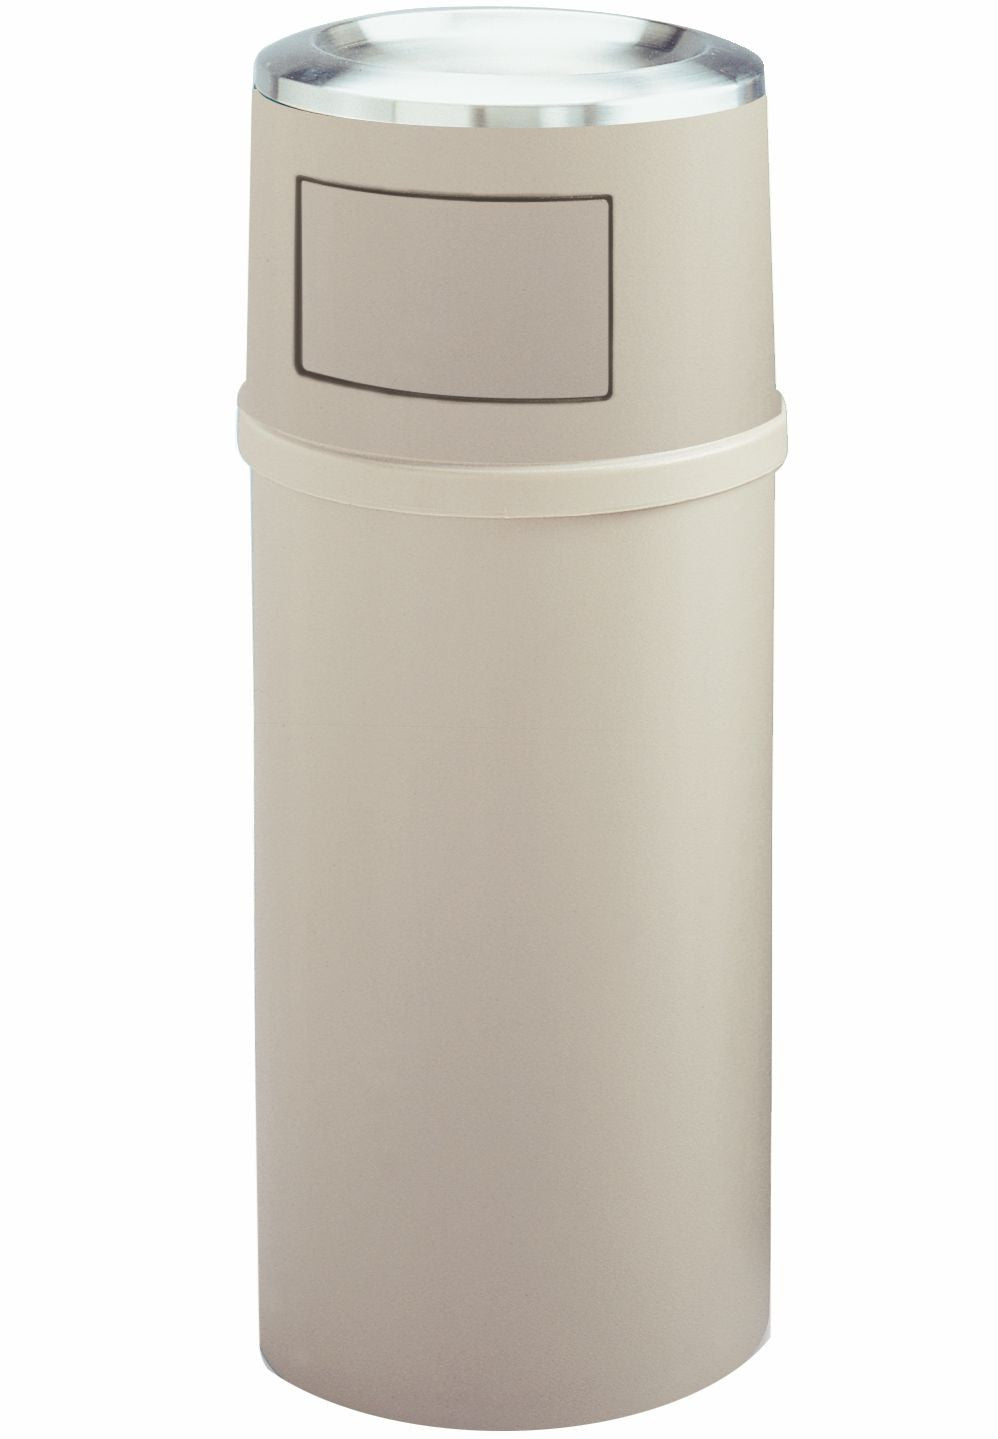 ASH/TRASH CONTAINER 25gal  W/DOOR BEIGE